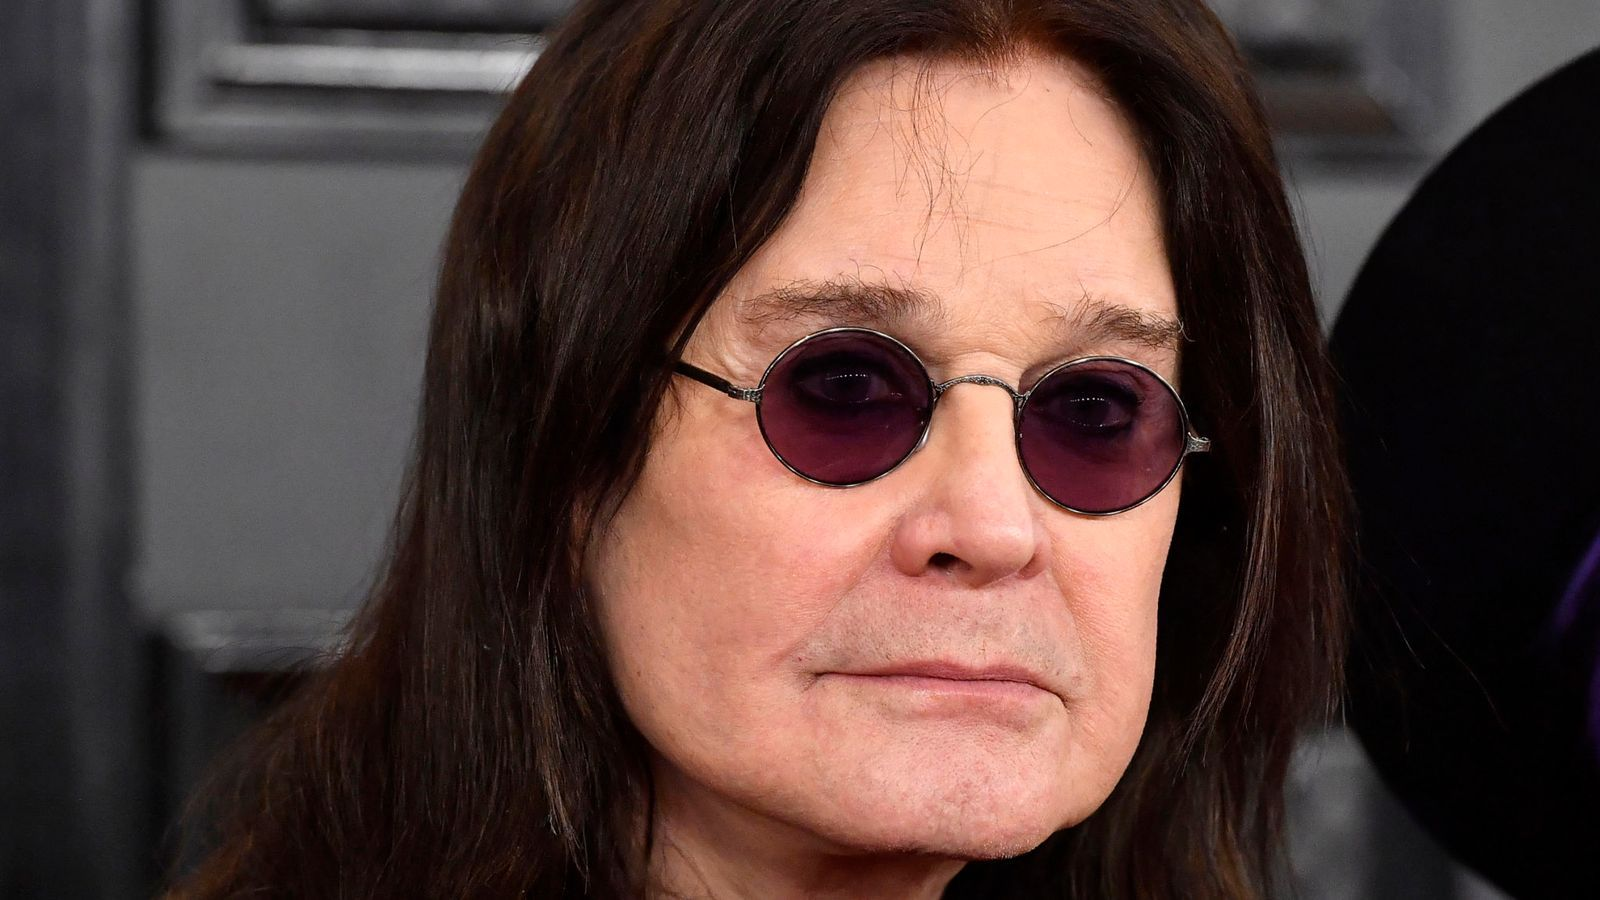 Ozzy Osbourne says he won't be here 'that much longer